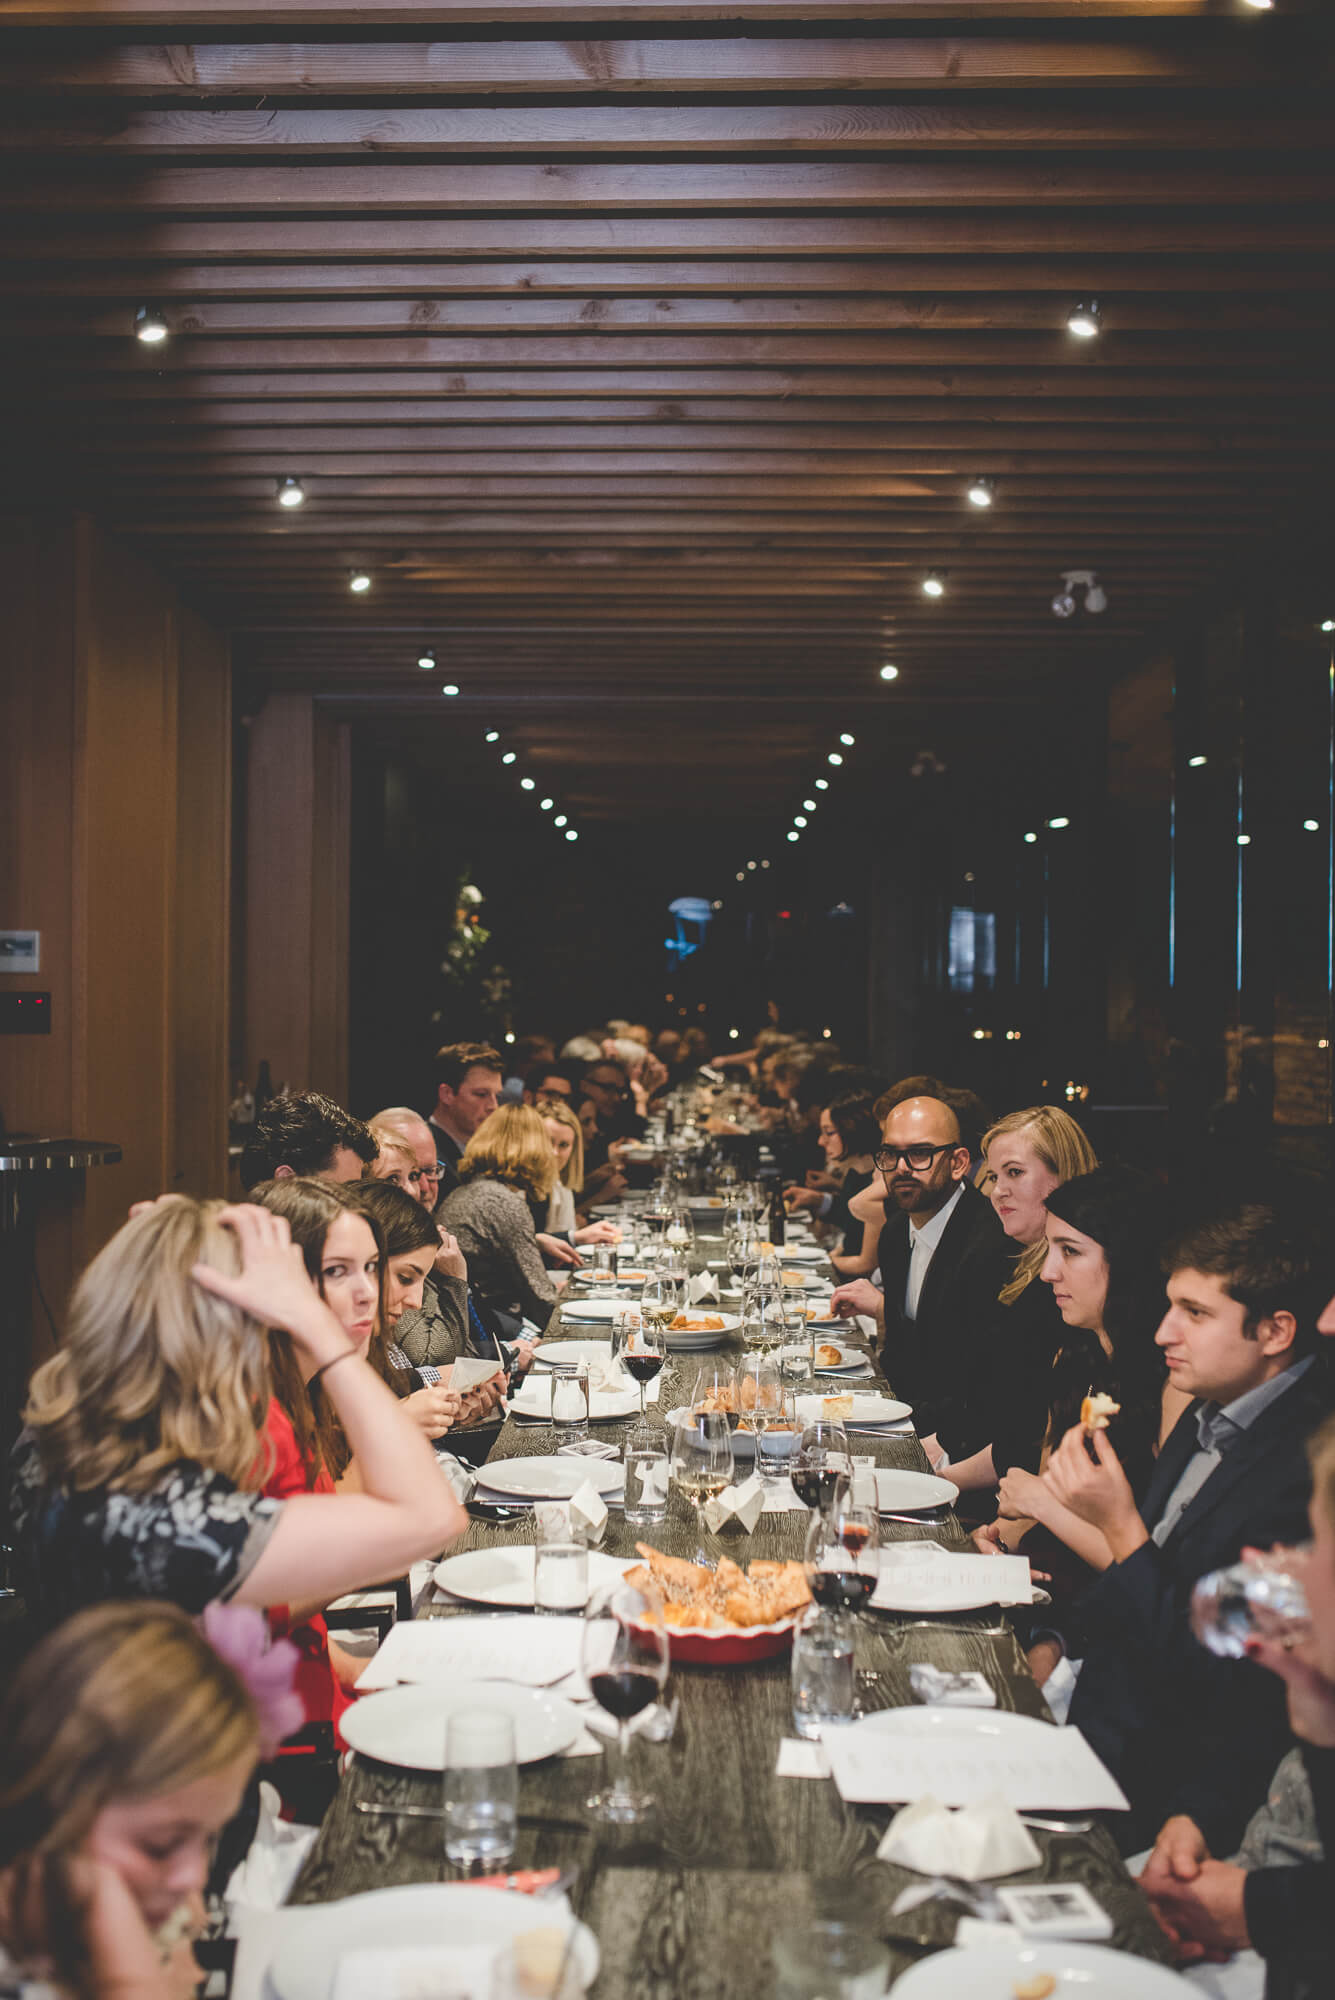 guests seated around a long table for wedding reception at L'Abattoir Restaurant in Gastown